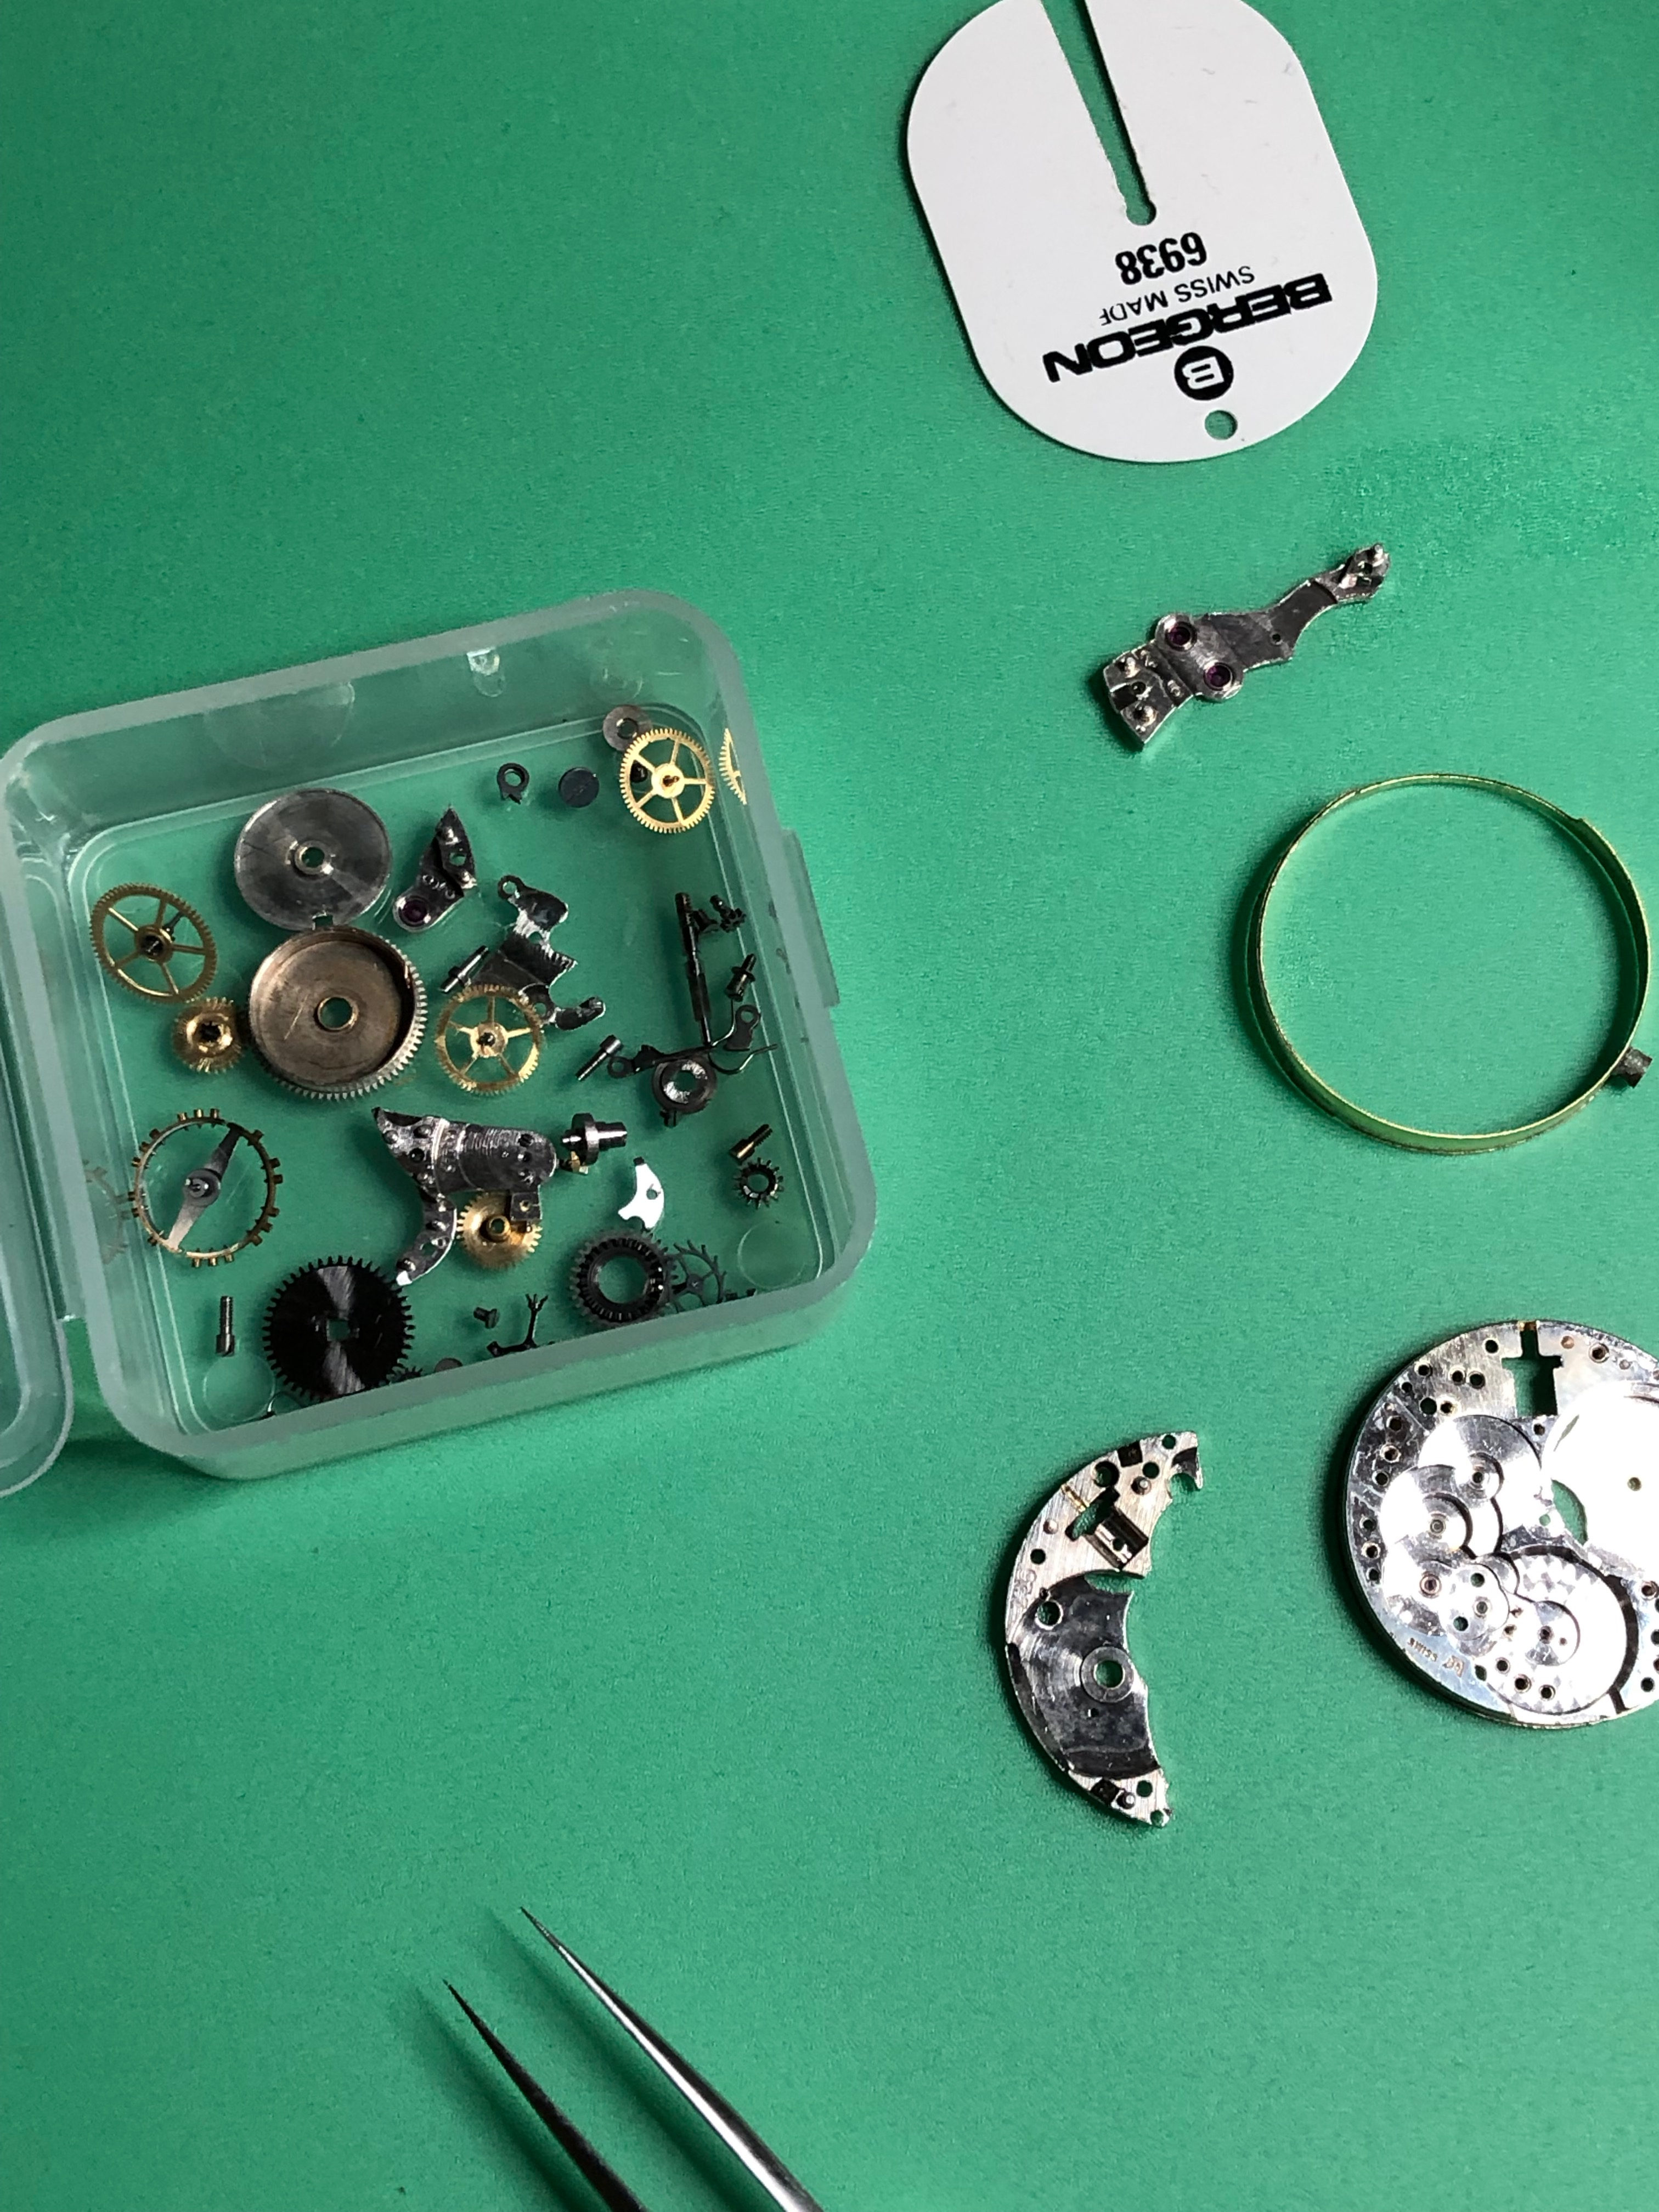 A watch movement being stripped